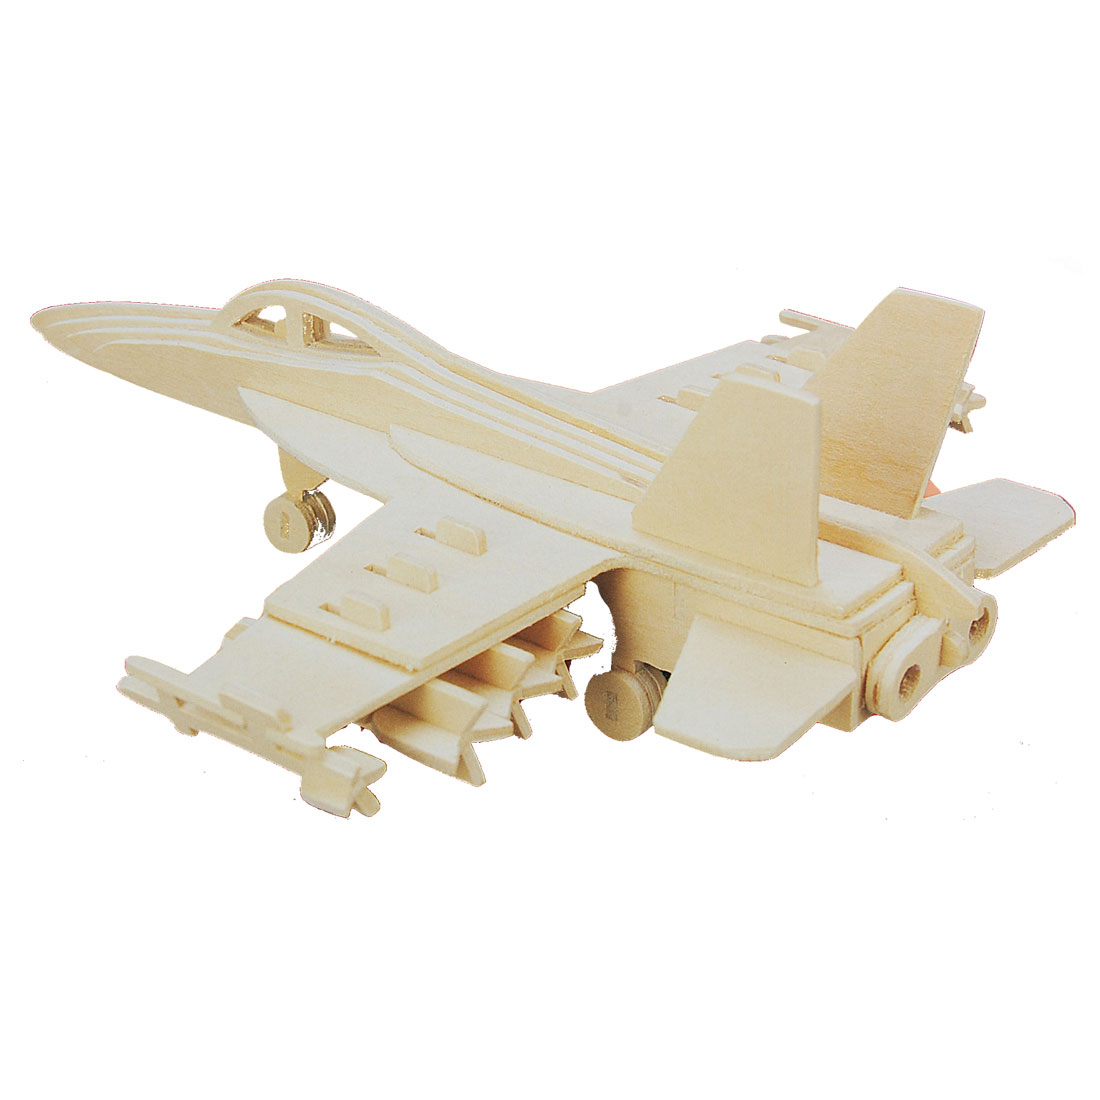 Woodecraft DIY Hornet Bomber Model Wooden Construction Kit Puzzle Toy